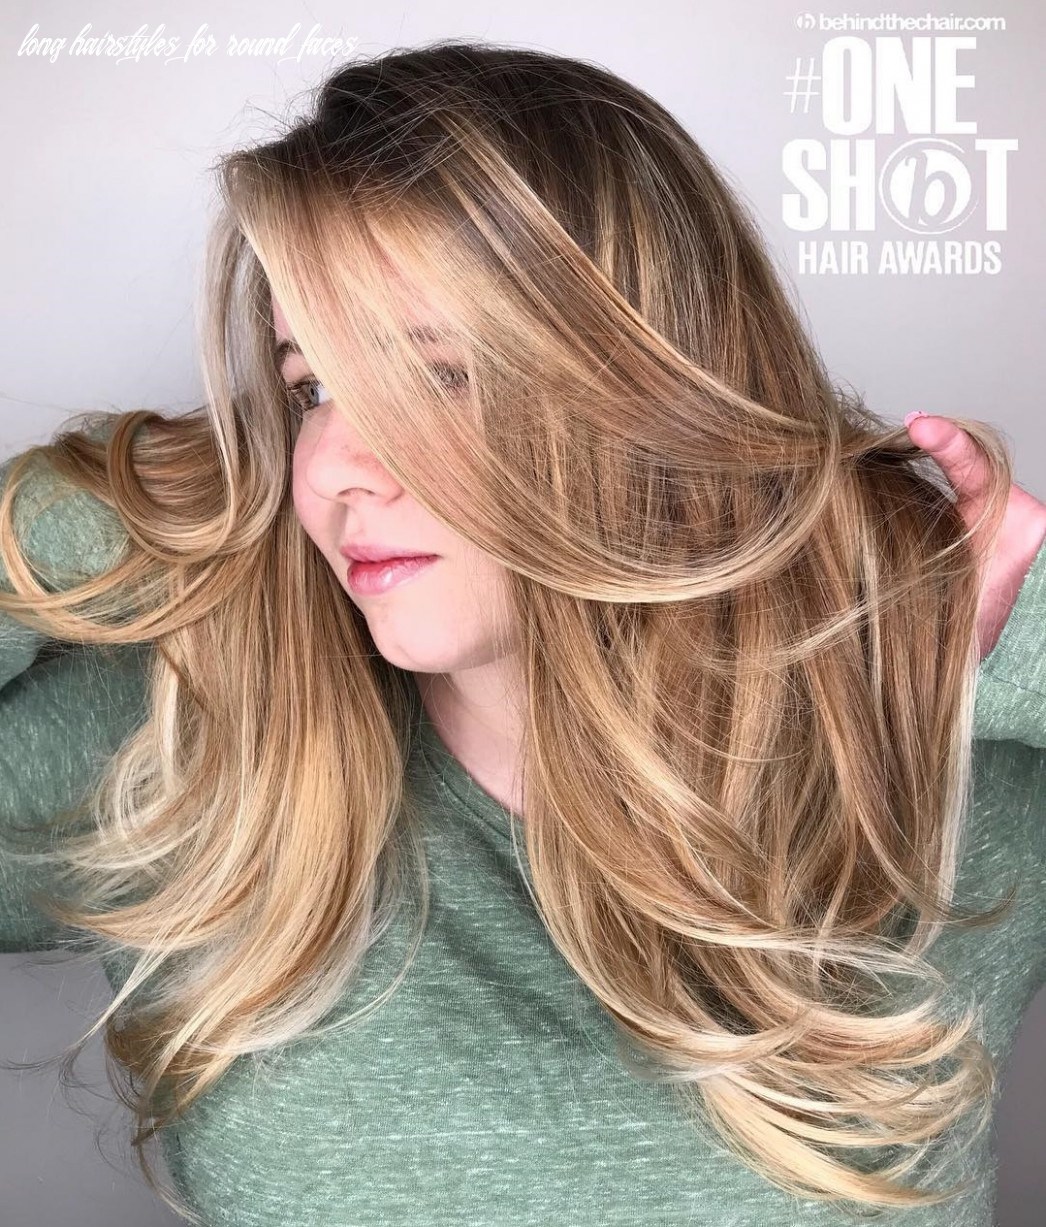 10 amazing haircuts for round faces hair adviser long hairstyles for round faces